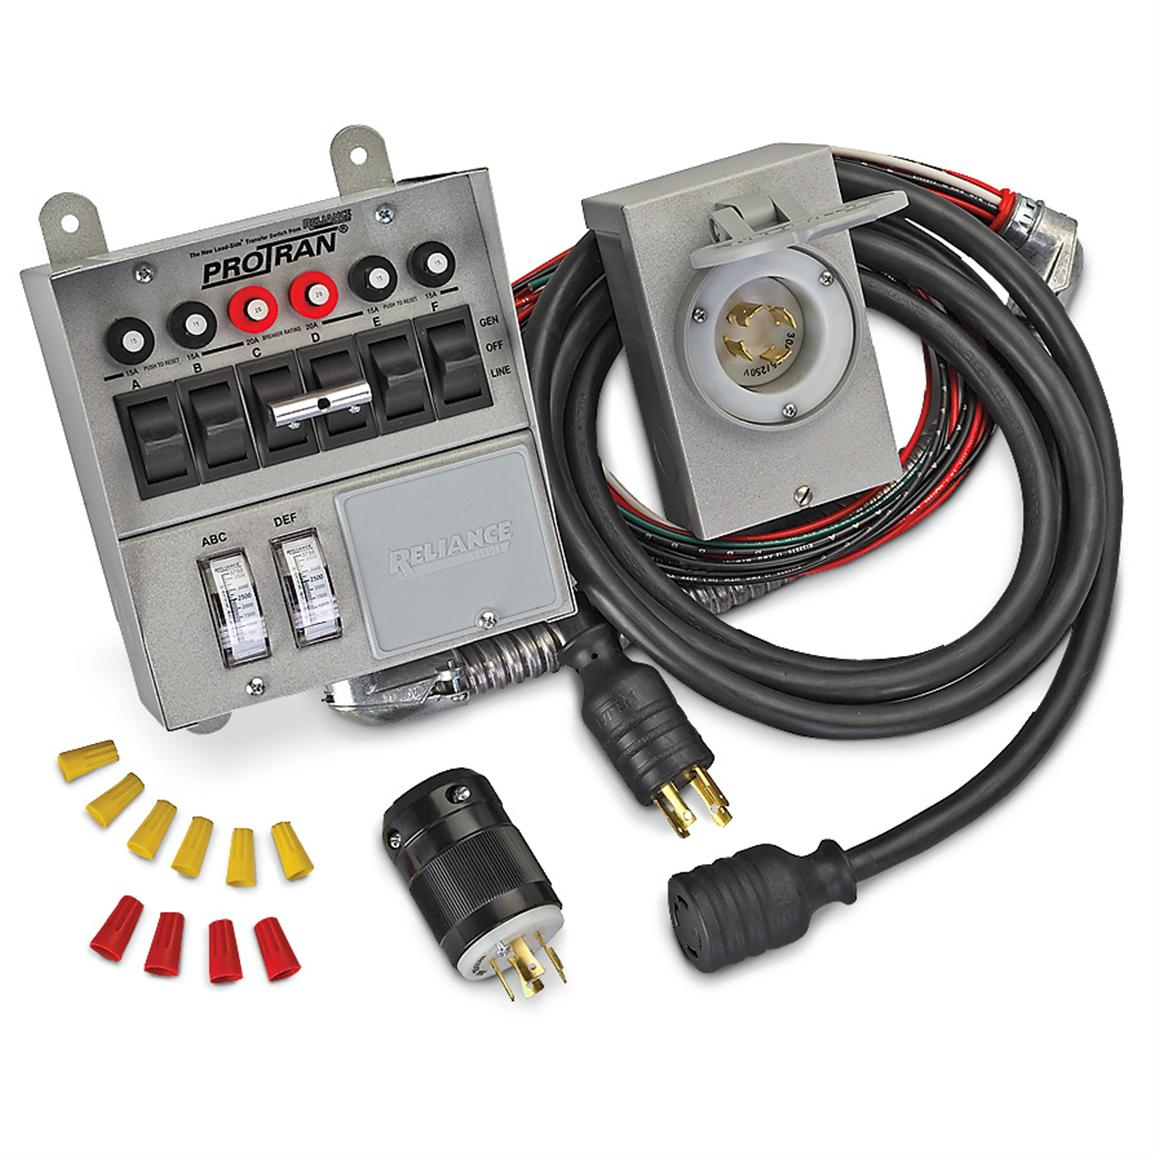 Reliance 6-circuit Transfer Switch Kit